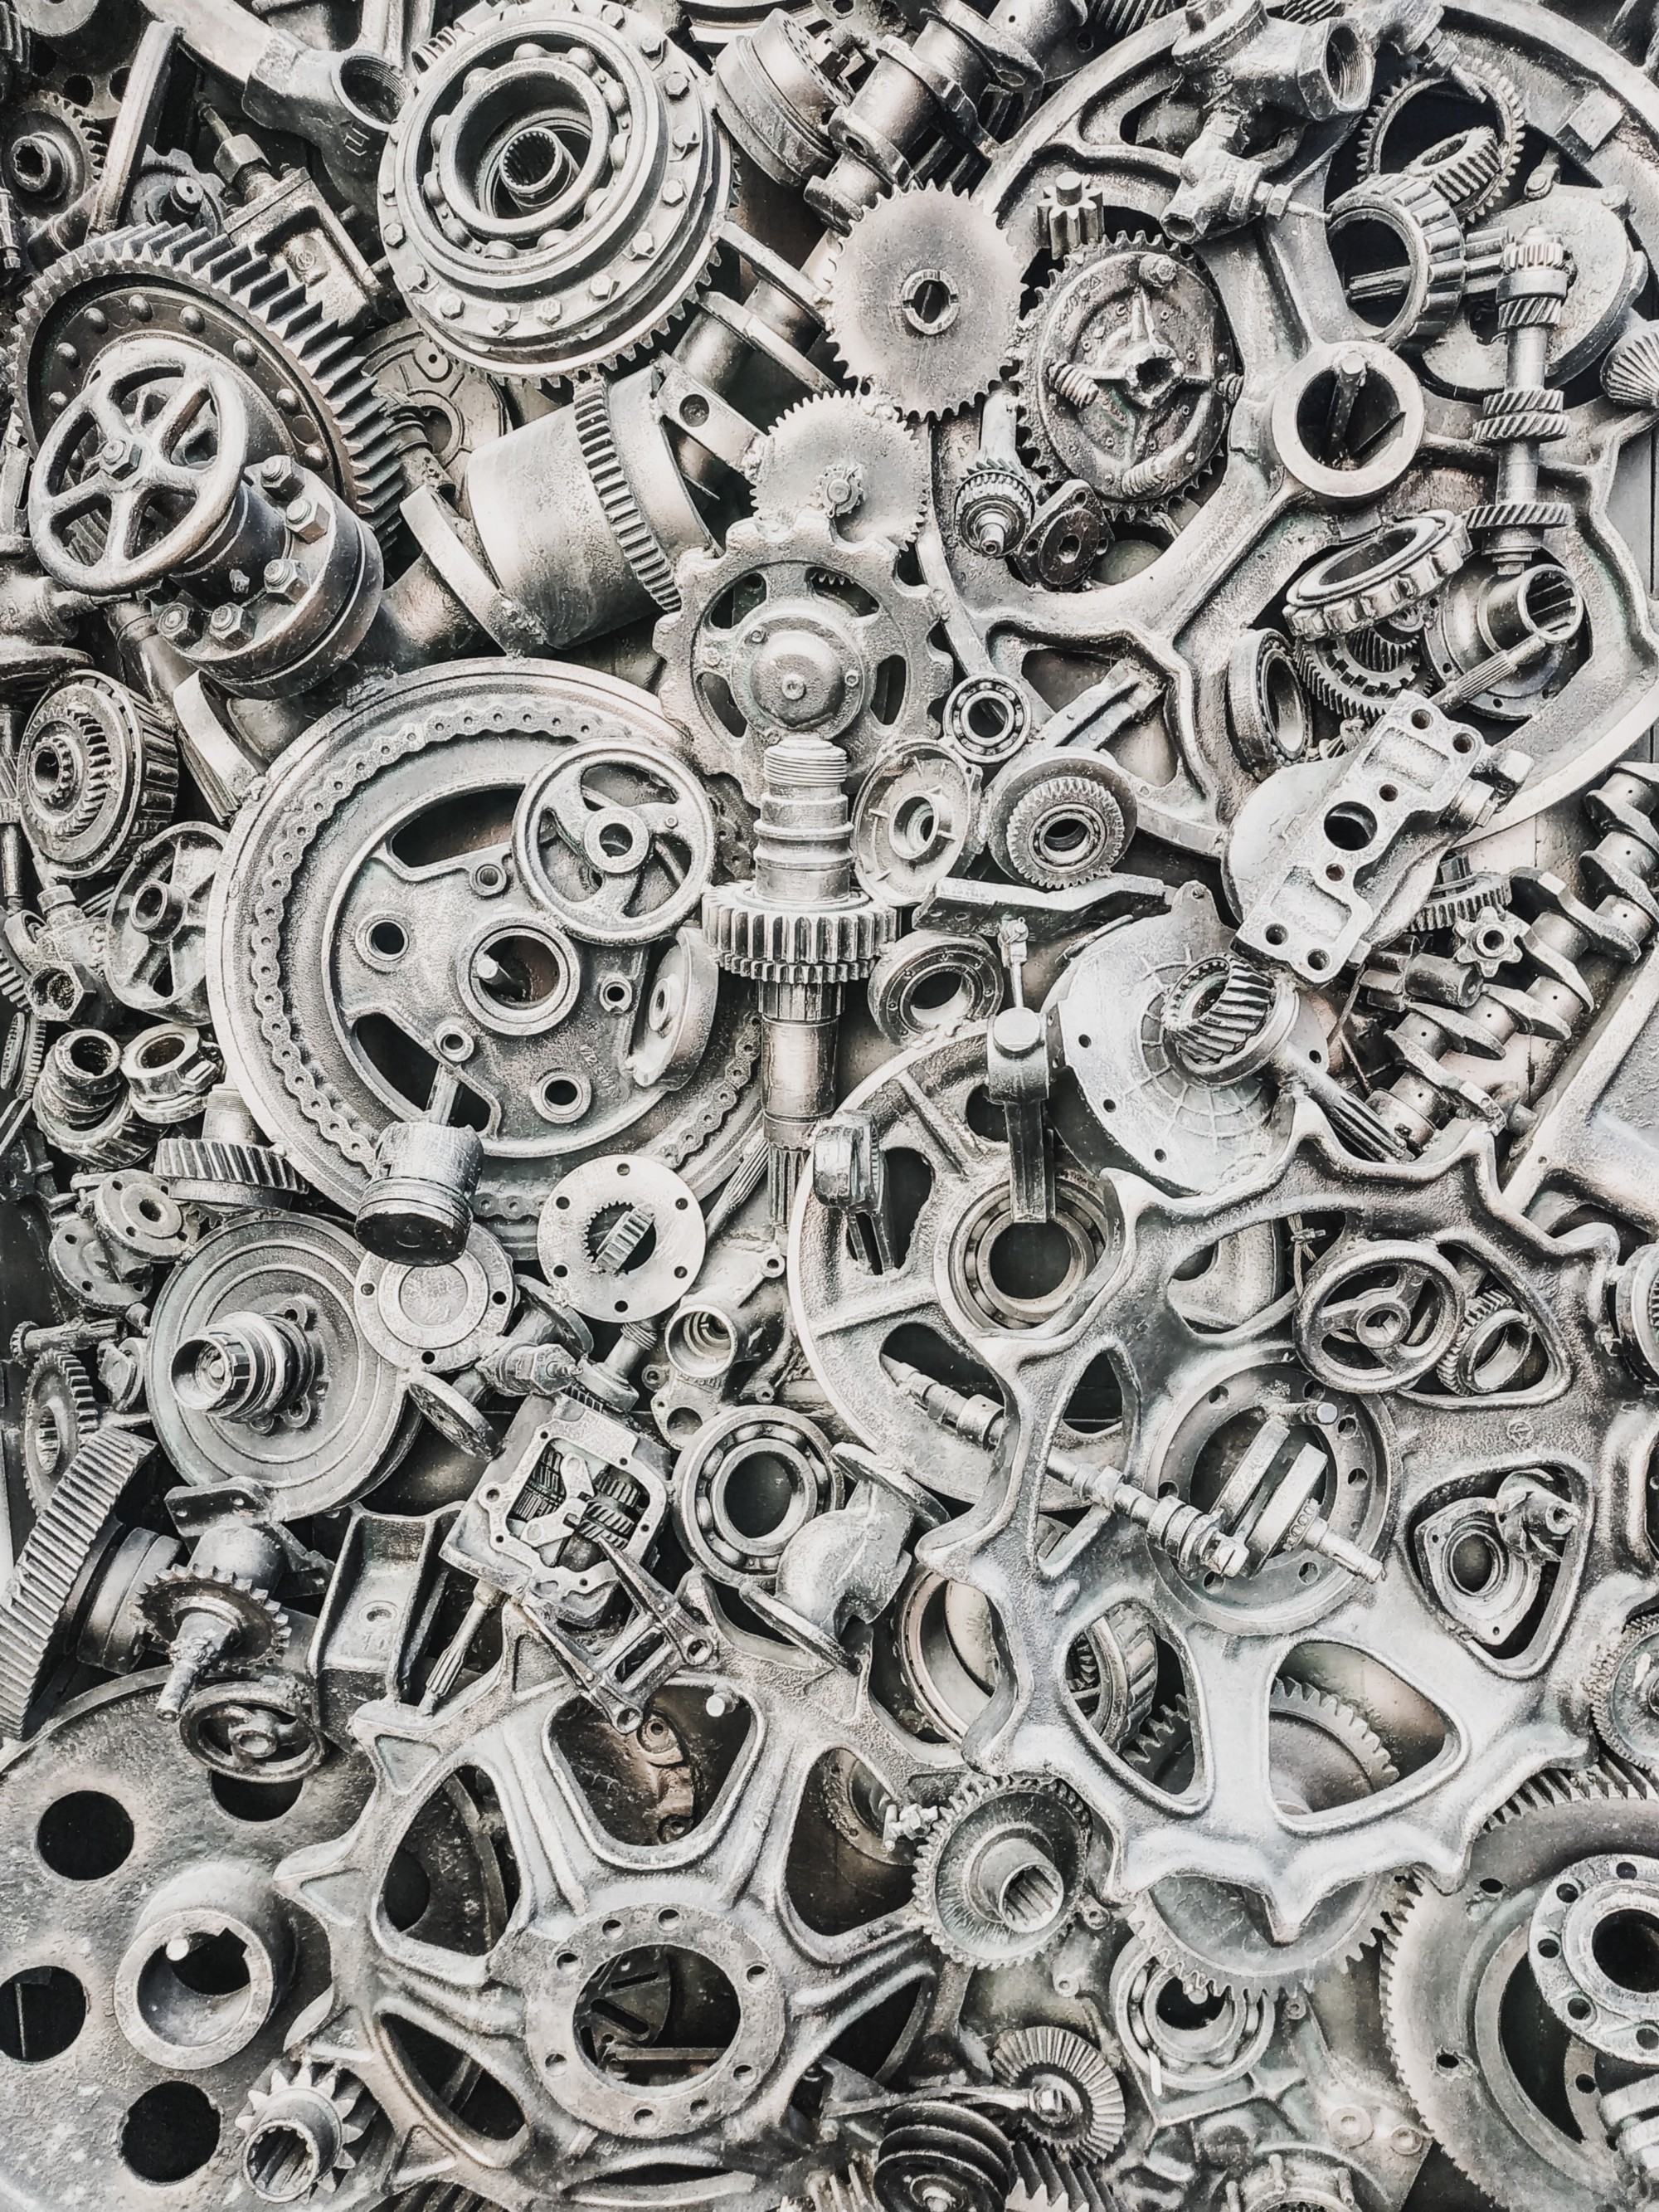 Thousands of Gears in a machine